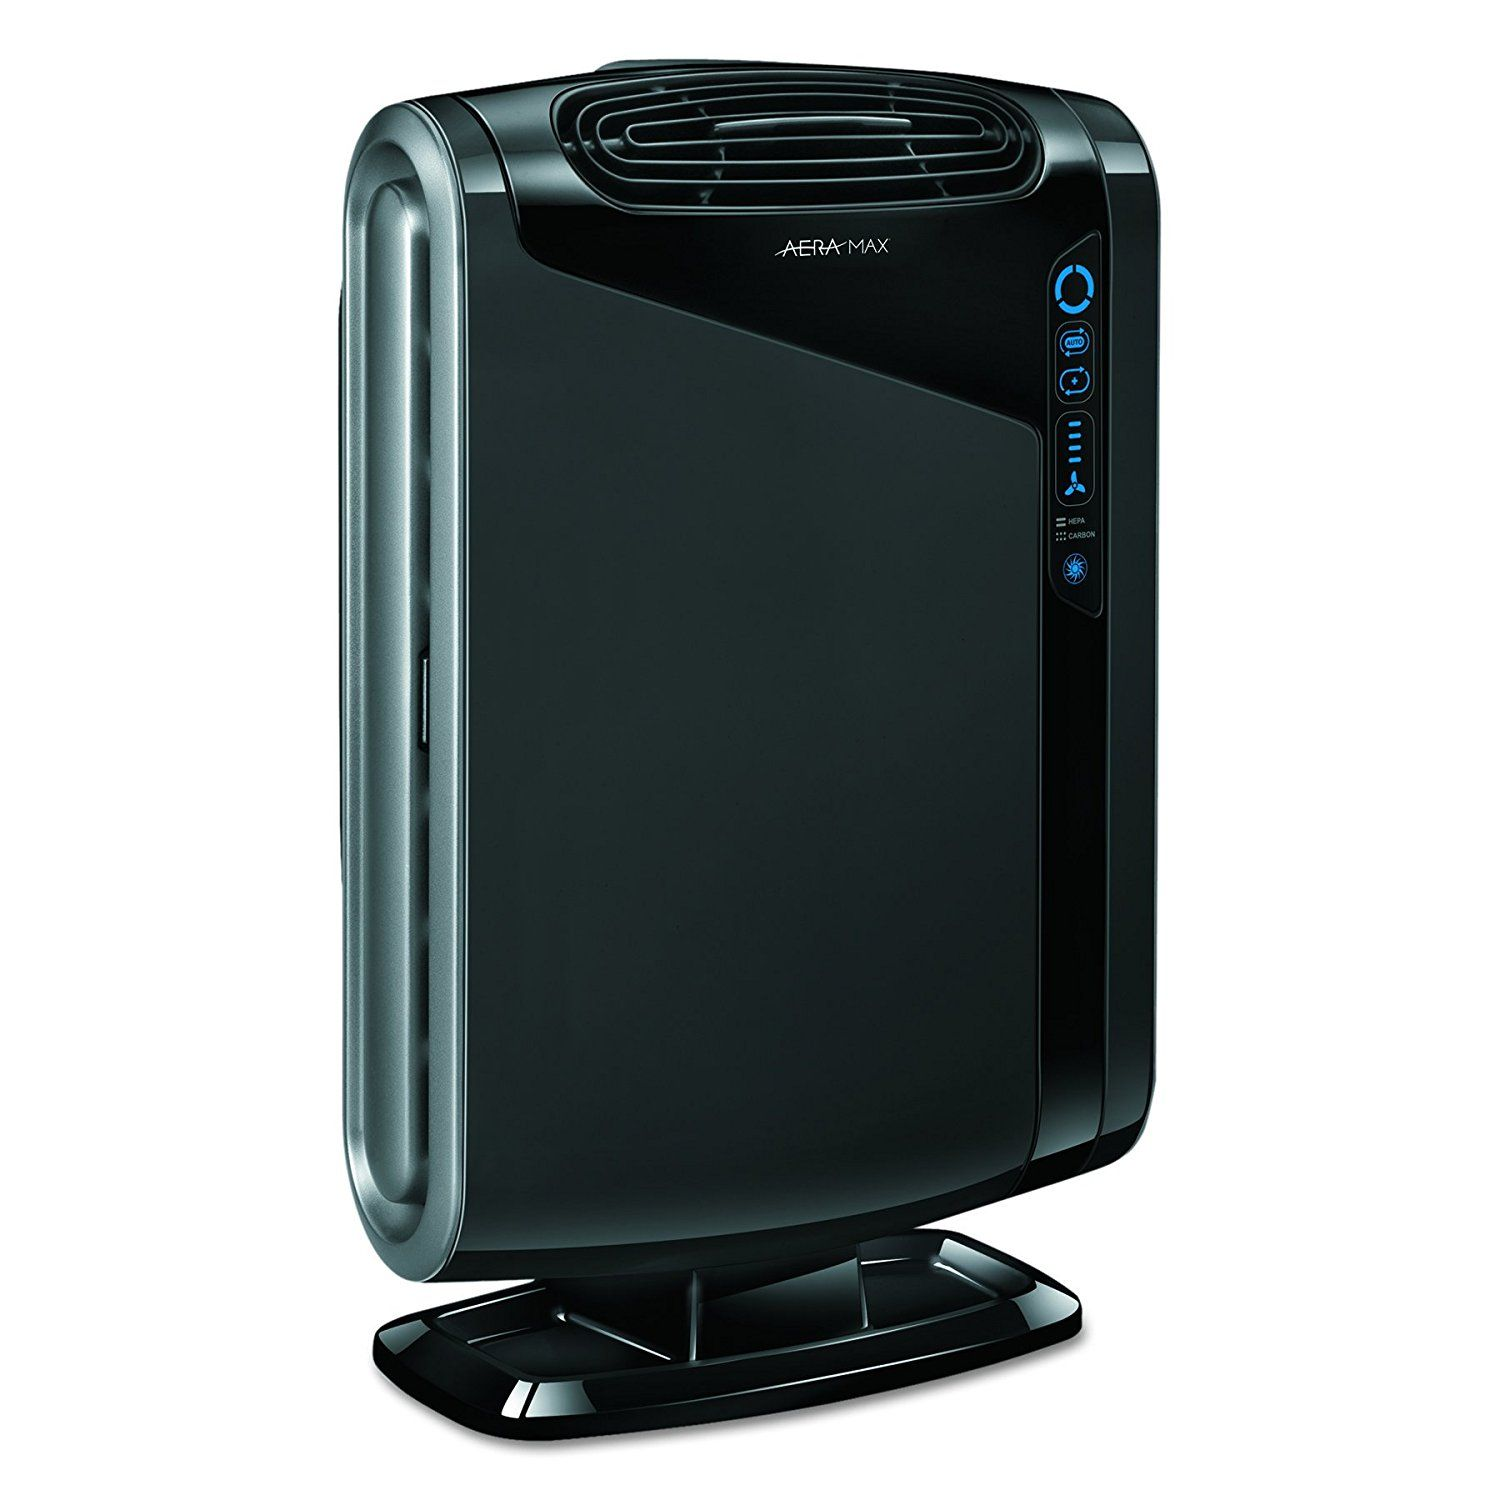 Air Purifier Reviews Air purifier reviews, Air purifier